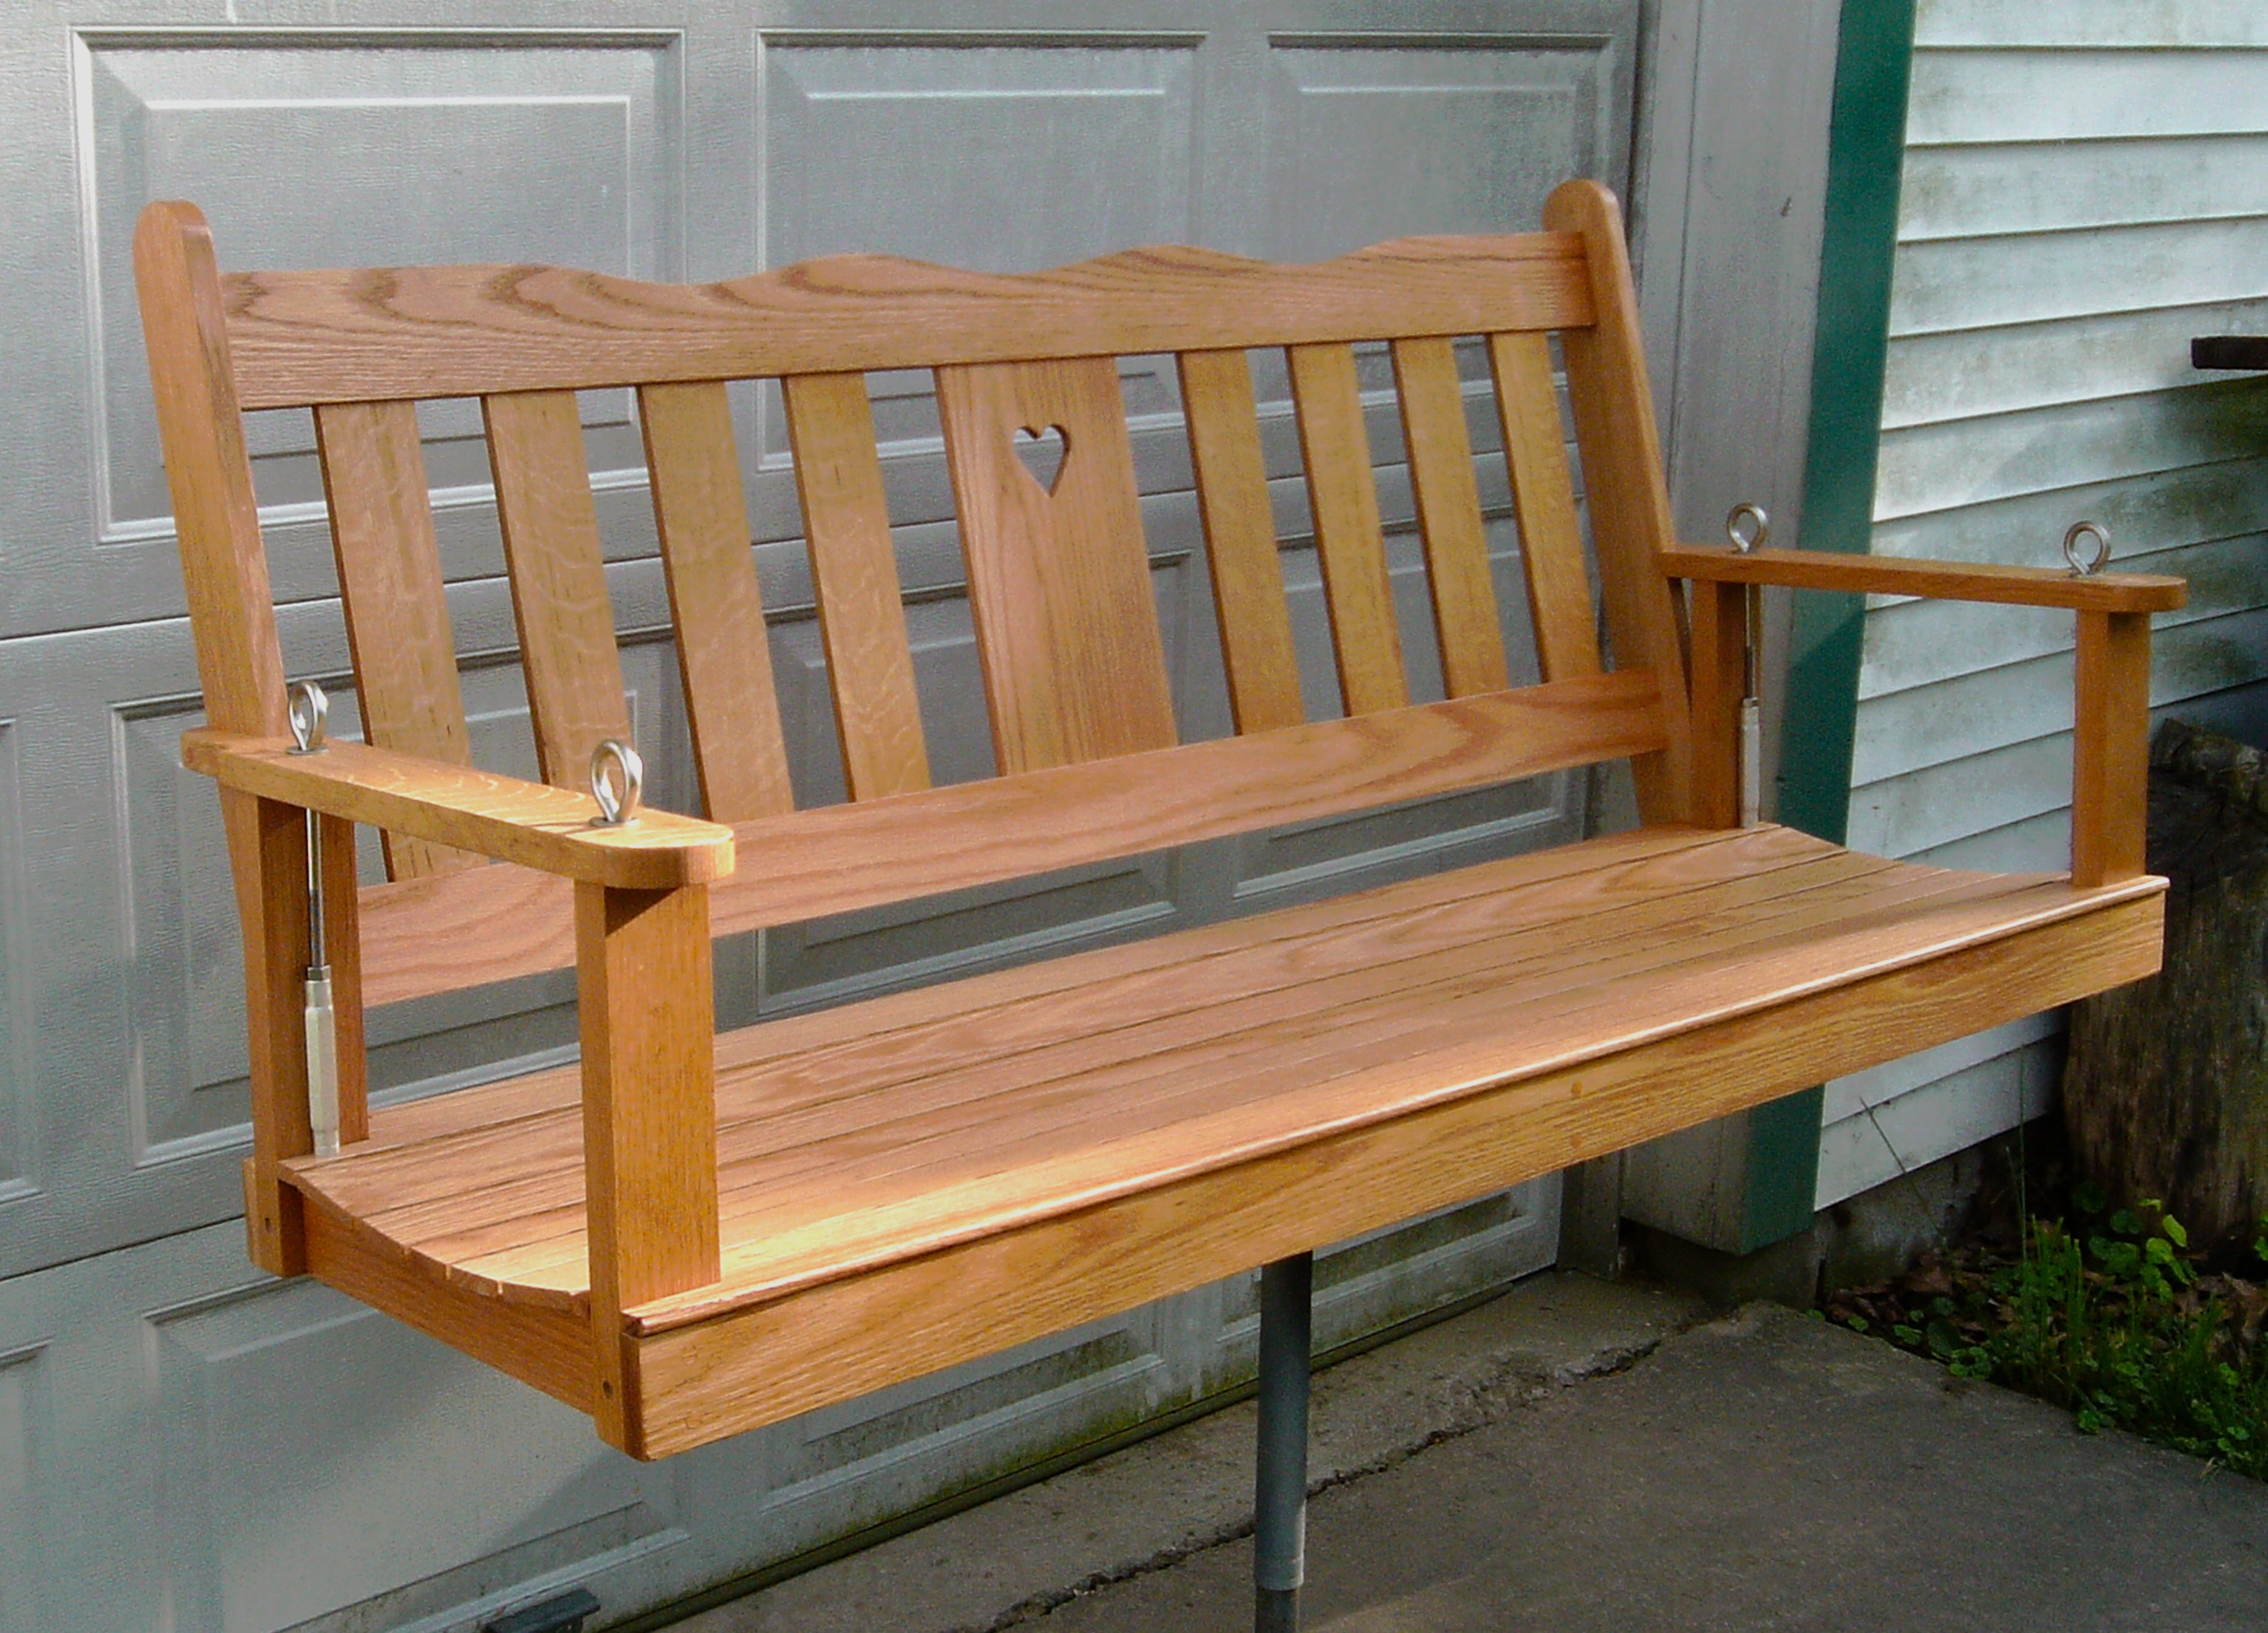 Porch Swing Build In White Oak And A Natural Finish In Spar Varnish. The  Hardware